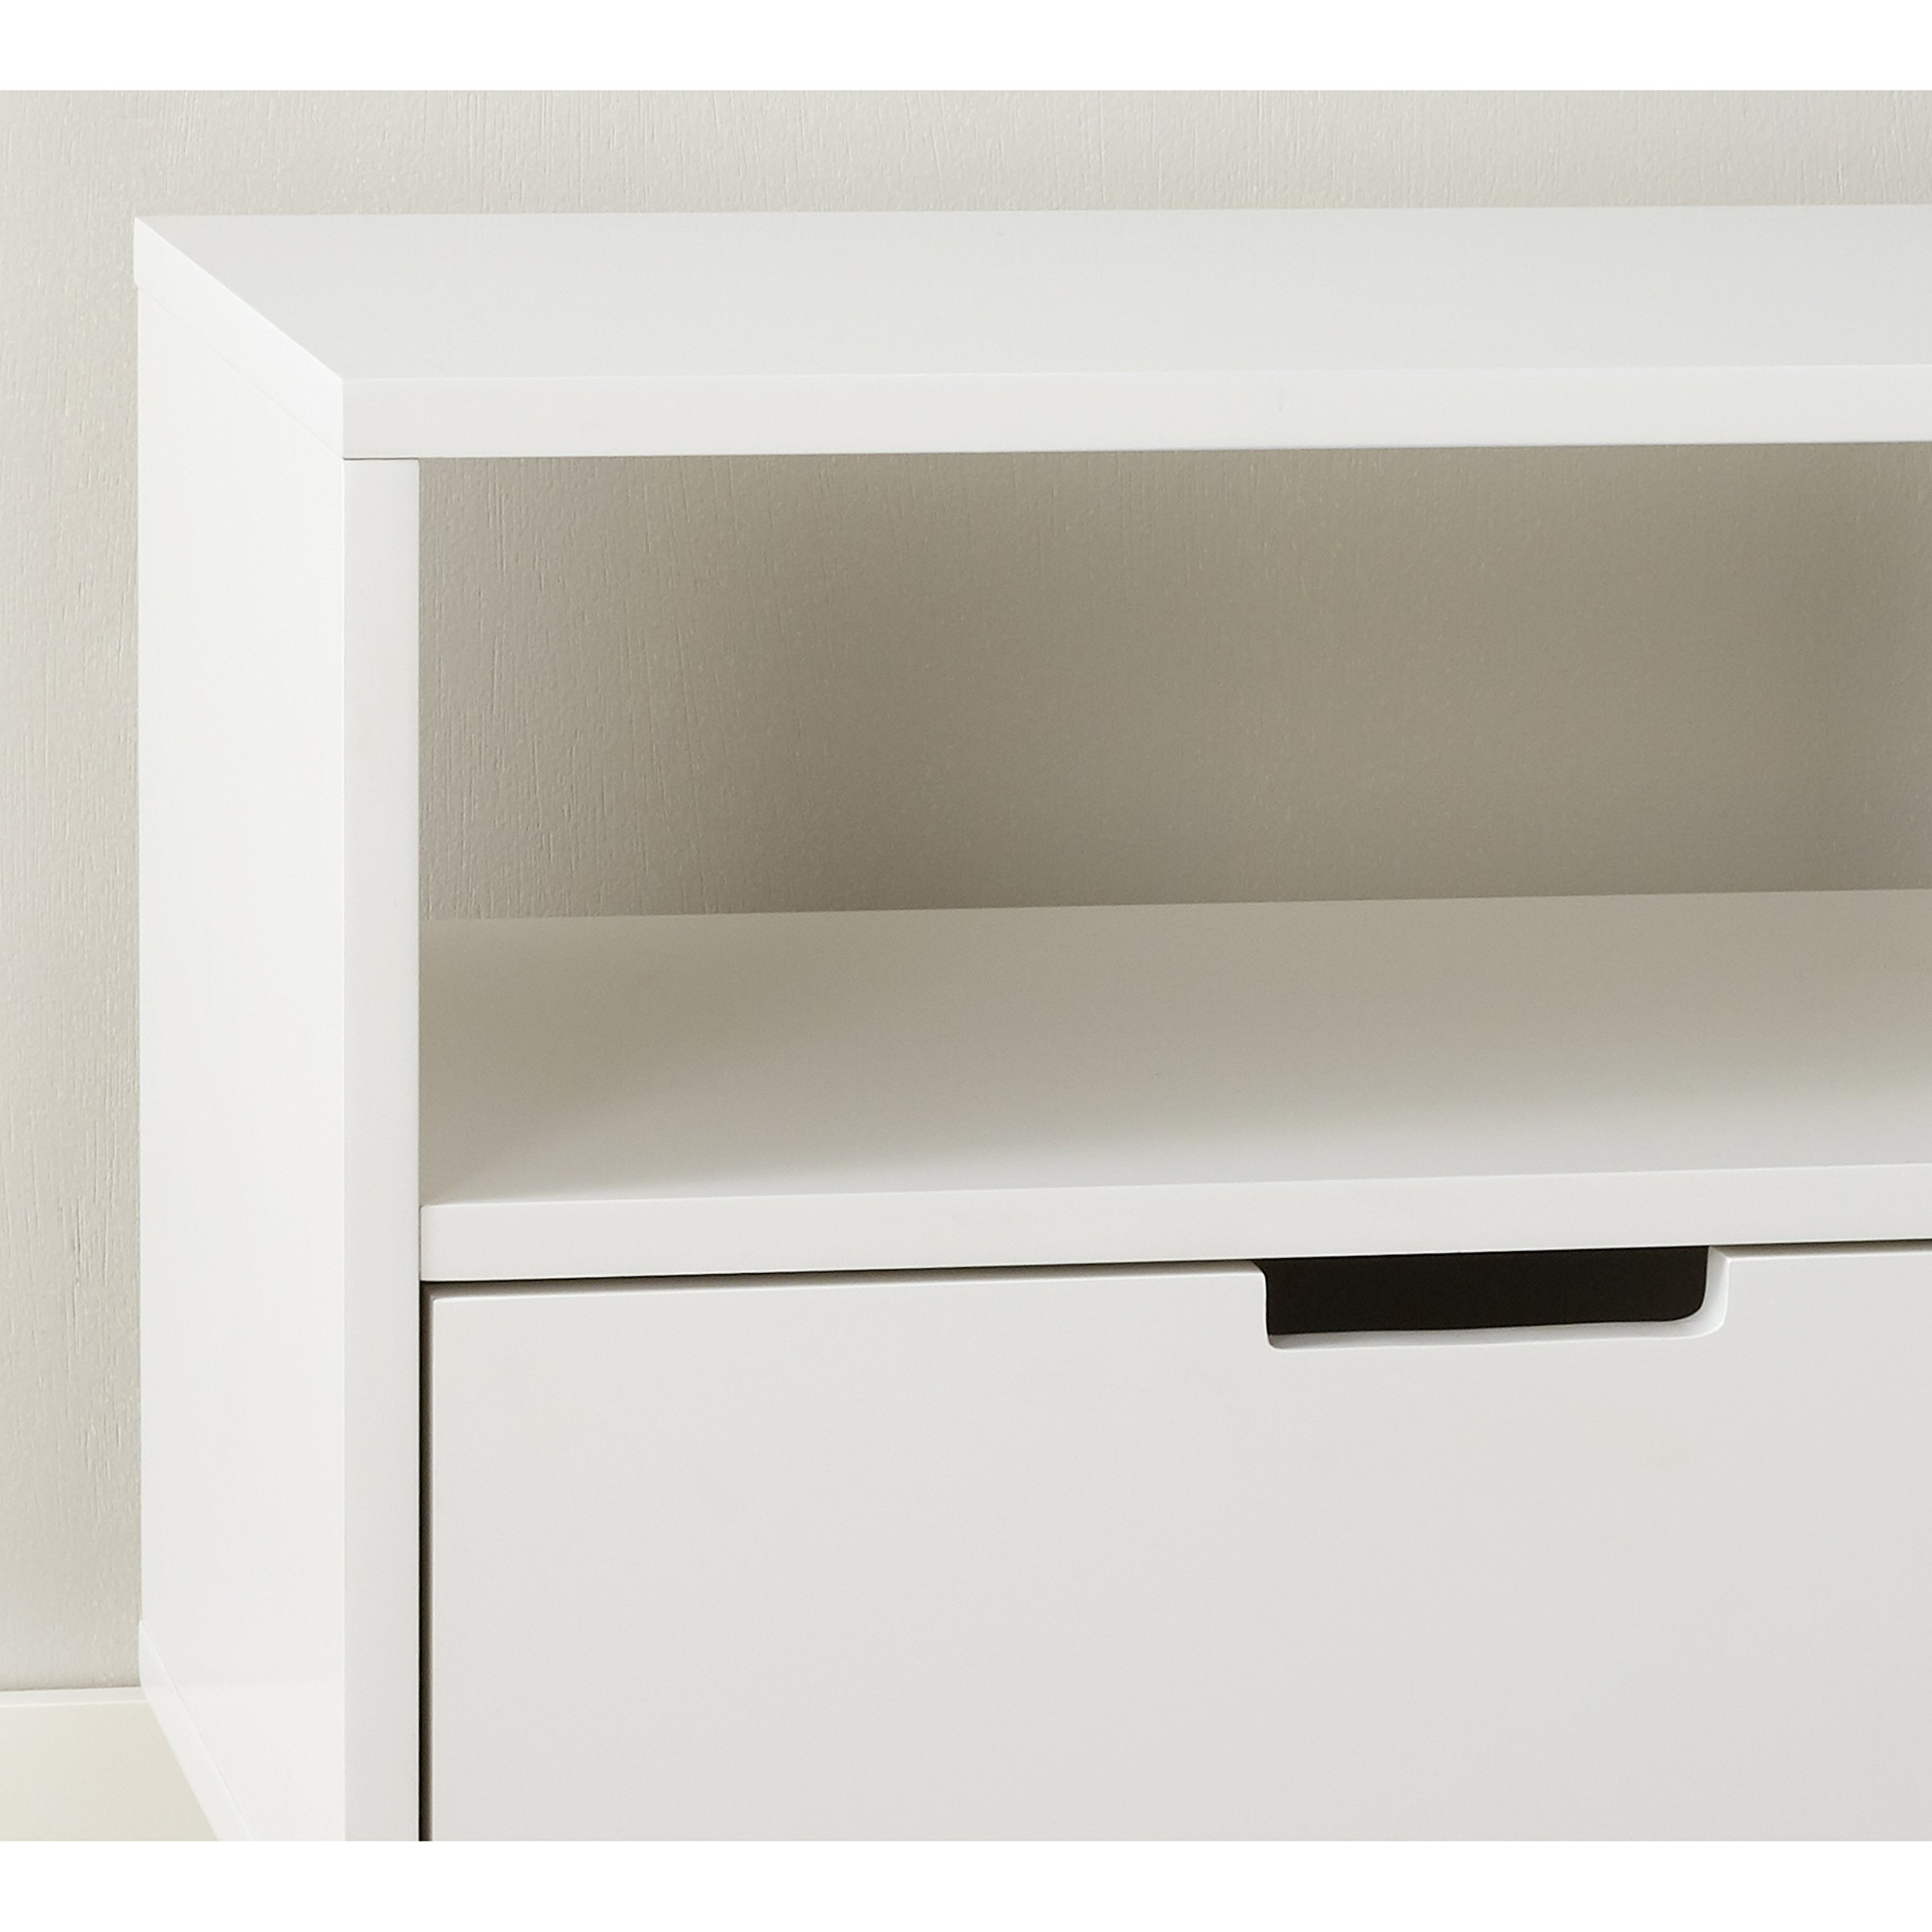 Better Homes and Gardens Flynn Mid Century Modern Credenza, White by Better Homes and Gardens (Image #4)